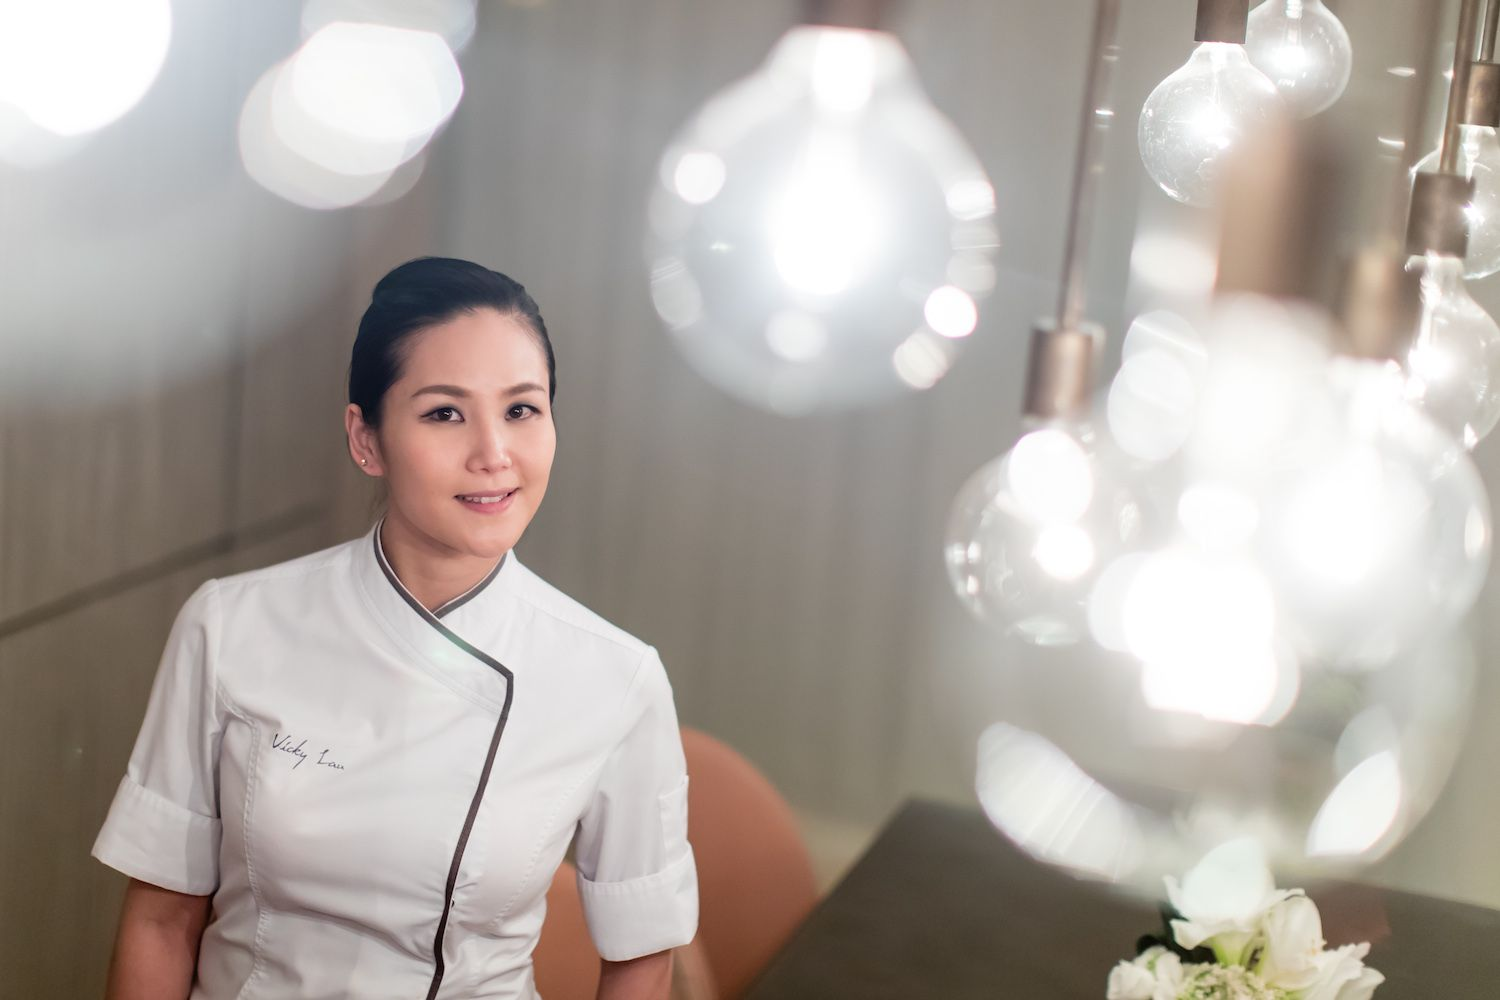 The Tatler 10: Vicky Lau of Tate Dining Room & Bar